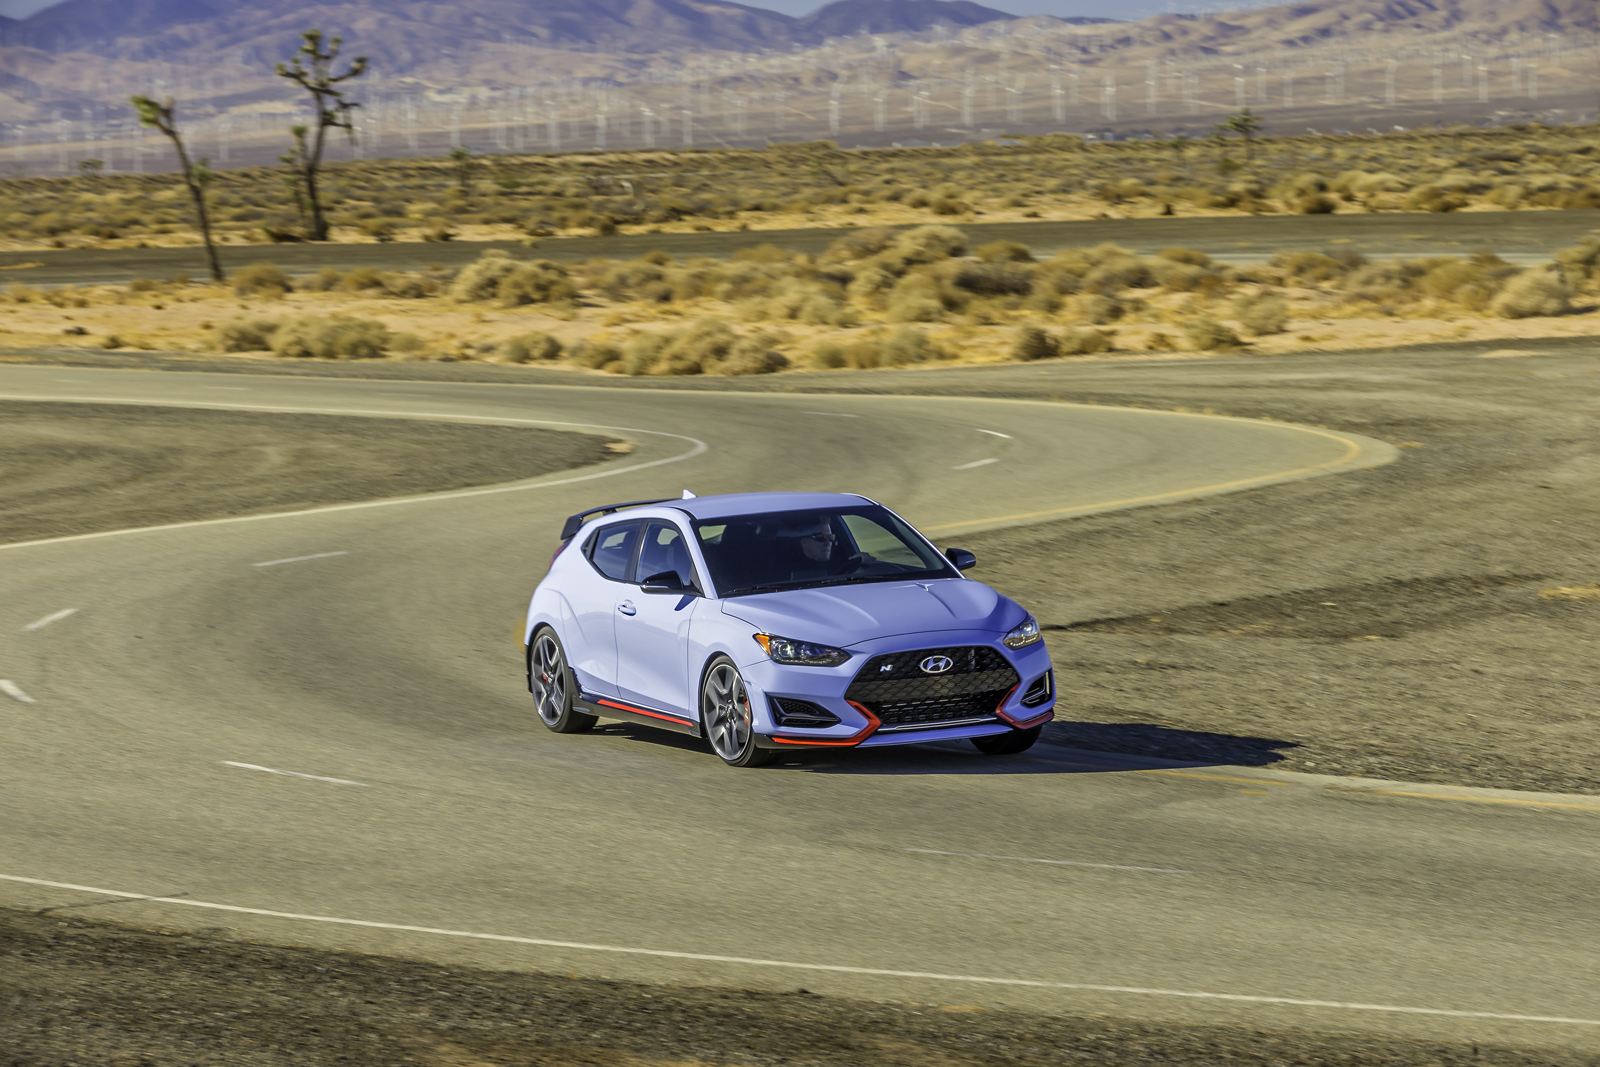 Hyundai Gets Serious About Performance With Launch of 275-HP